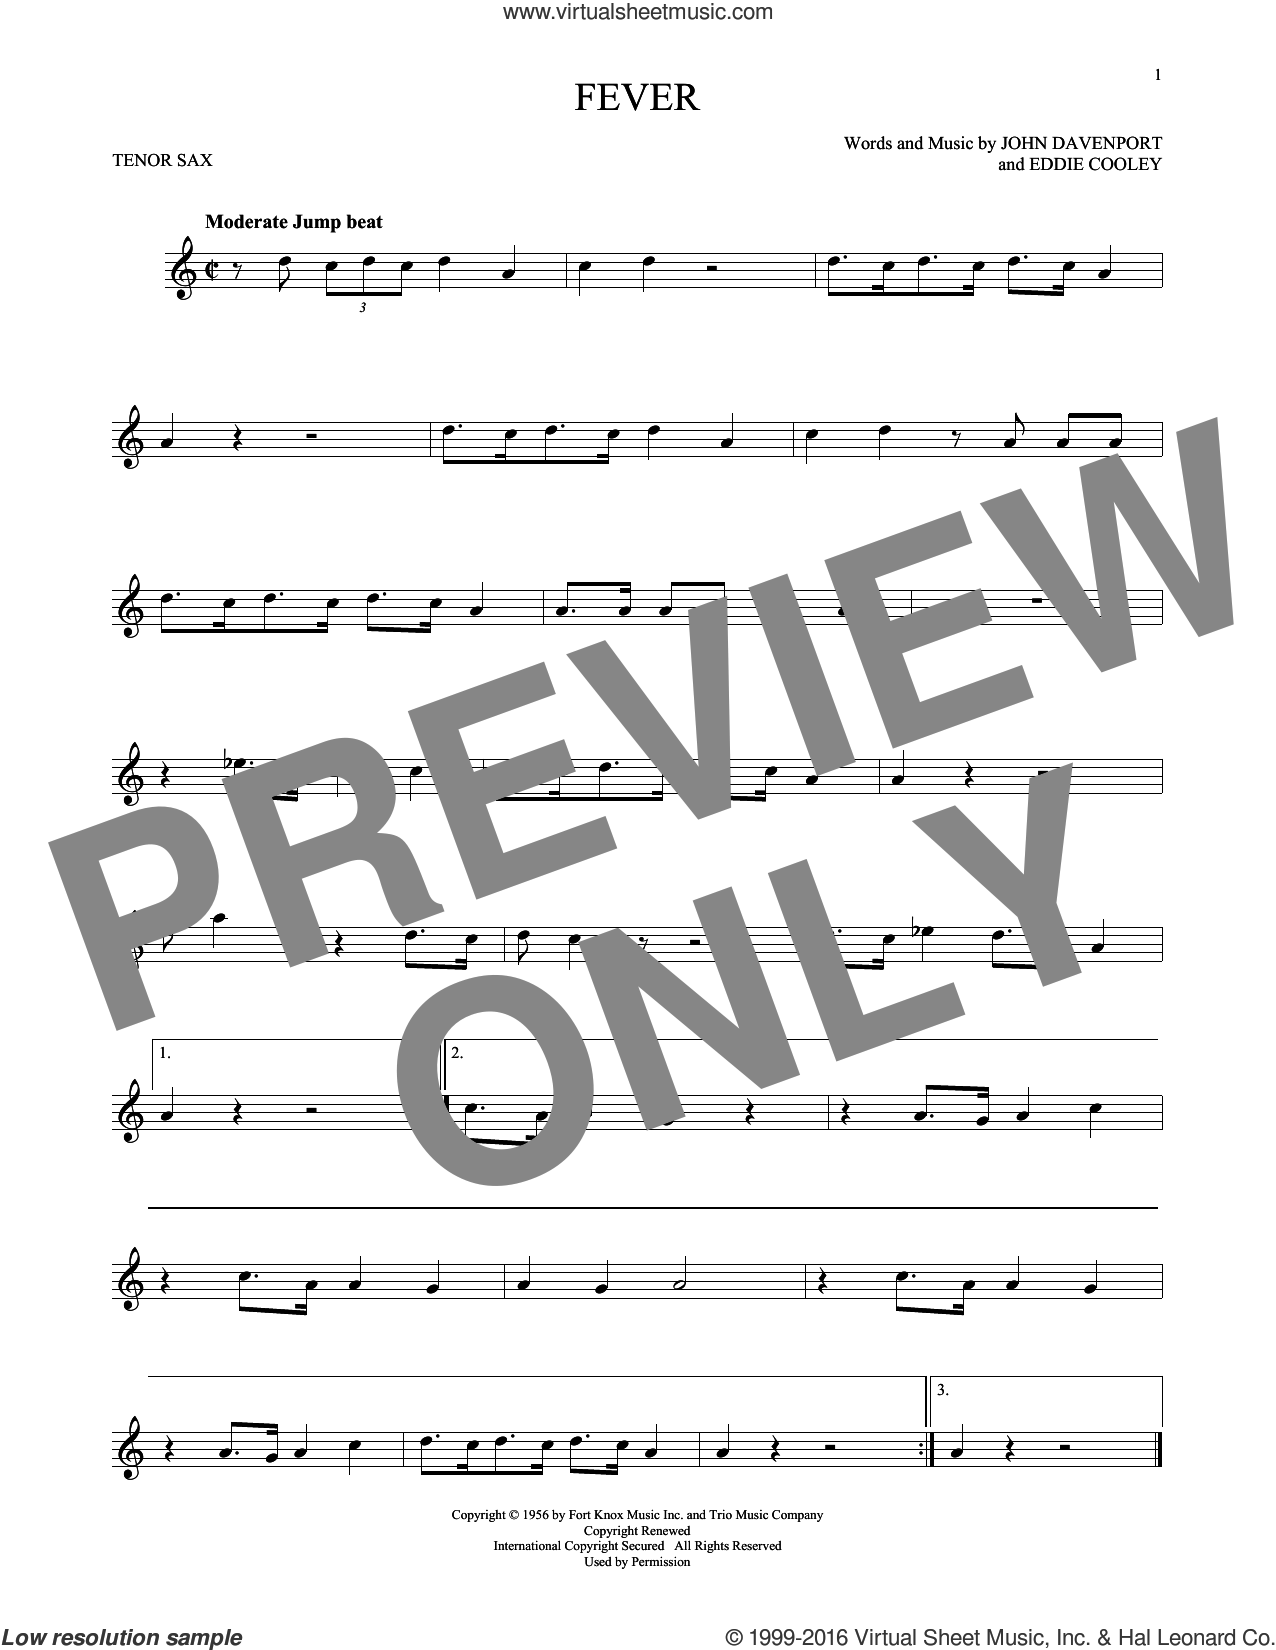 Fever sheet music for tenor saxophone solo by Eddie Cooley, Peggy Lee and John Davenport, intermediate skill level